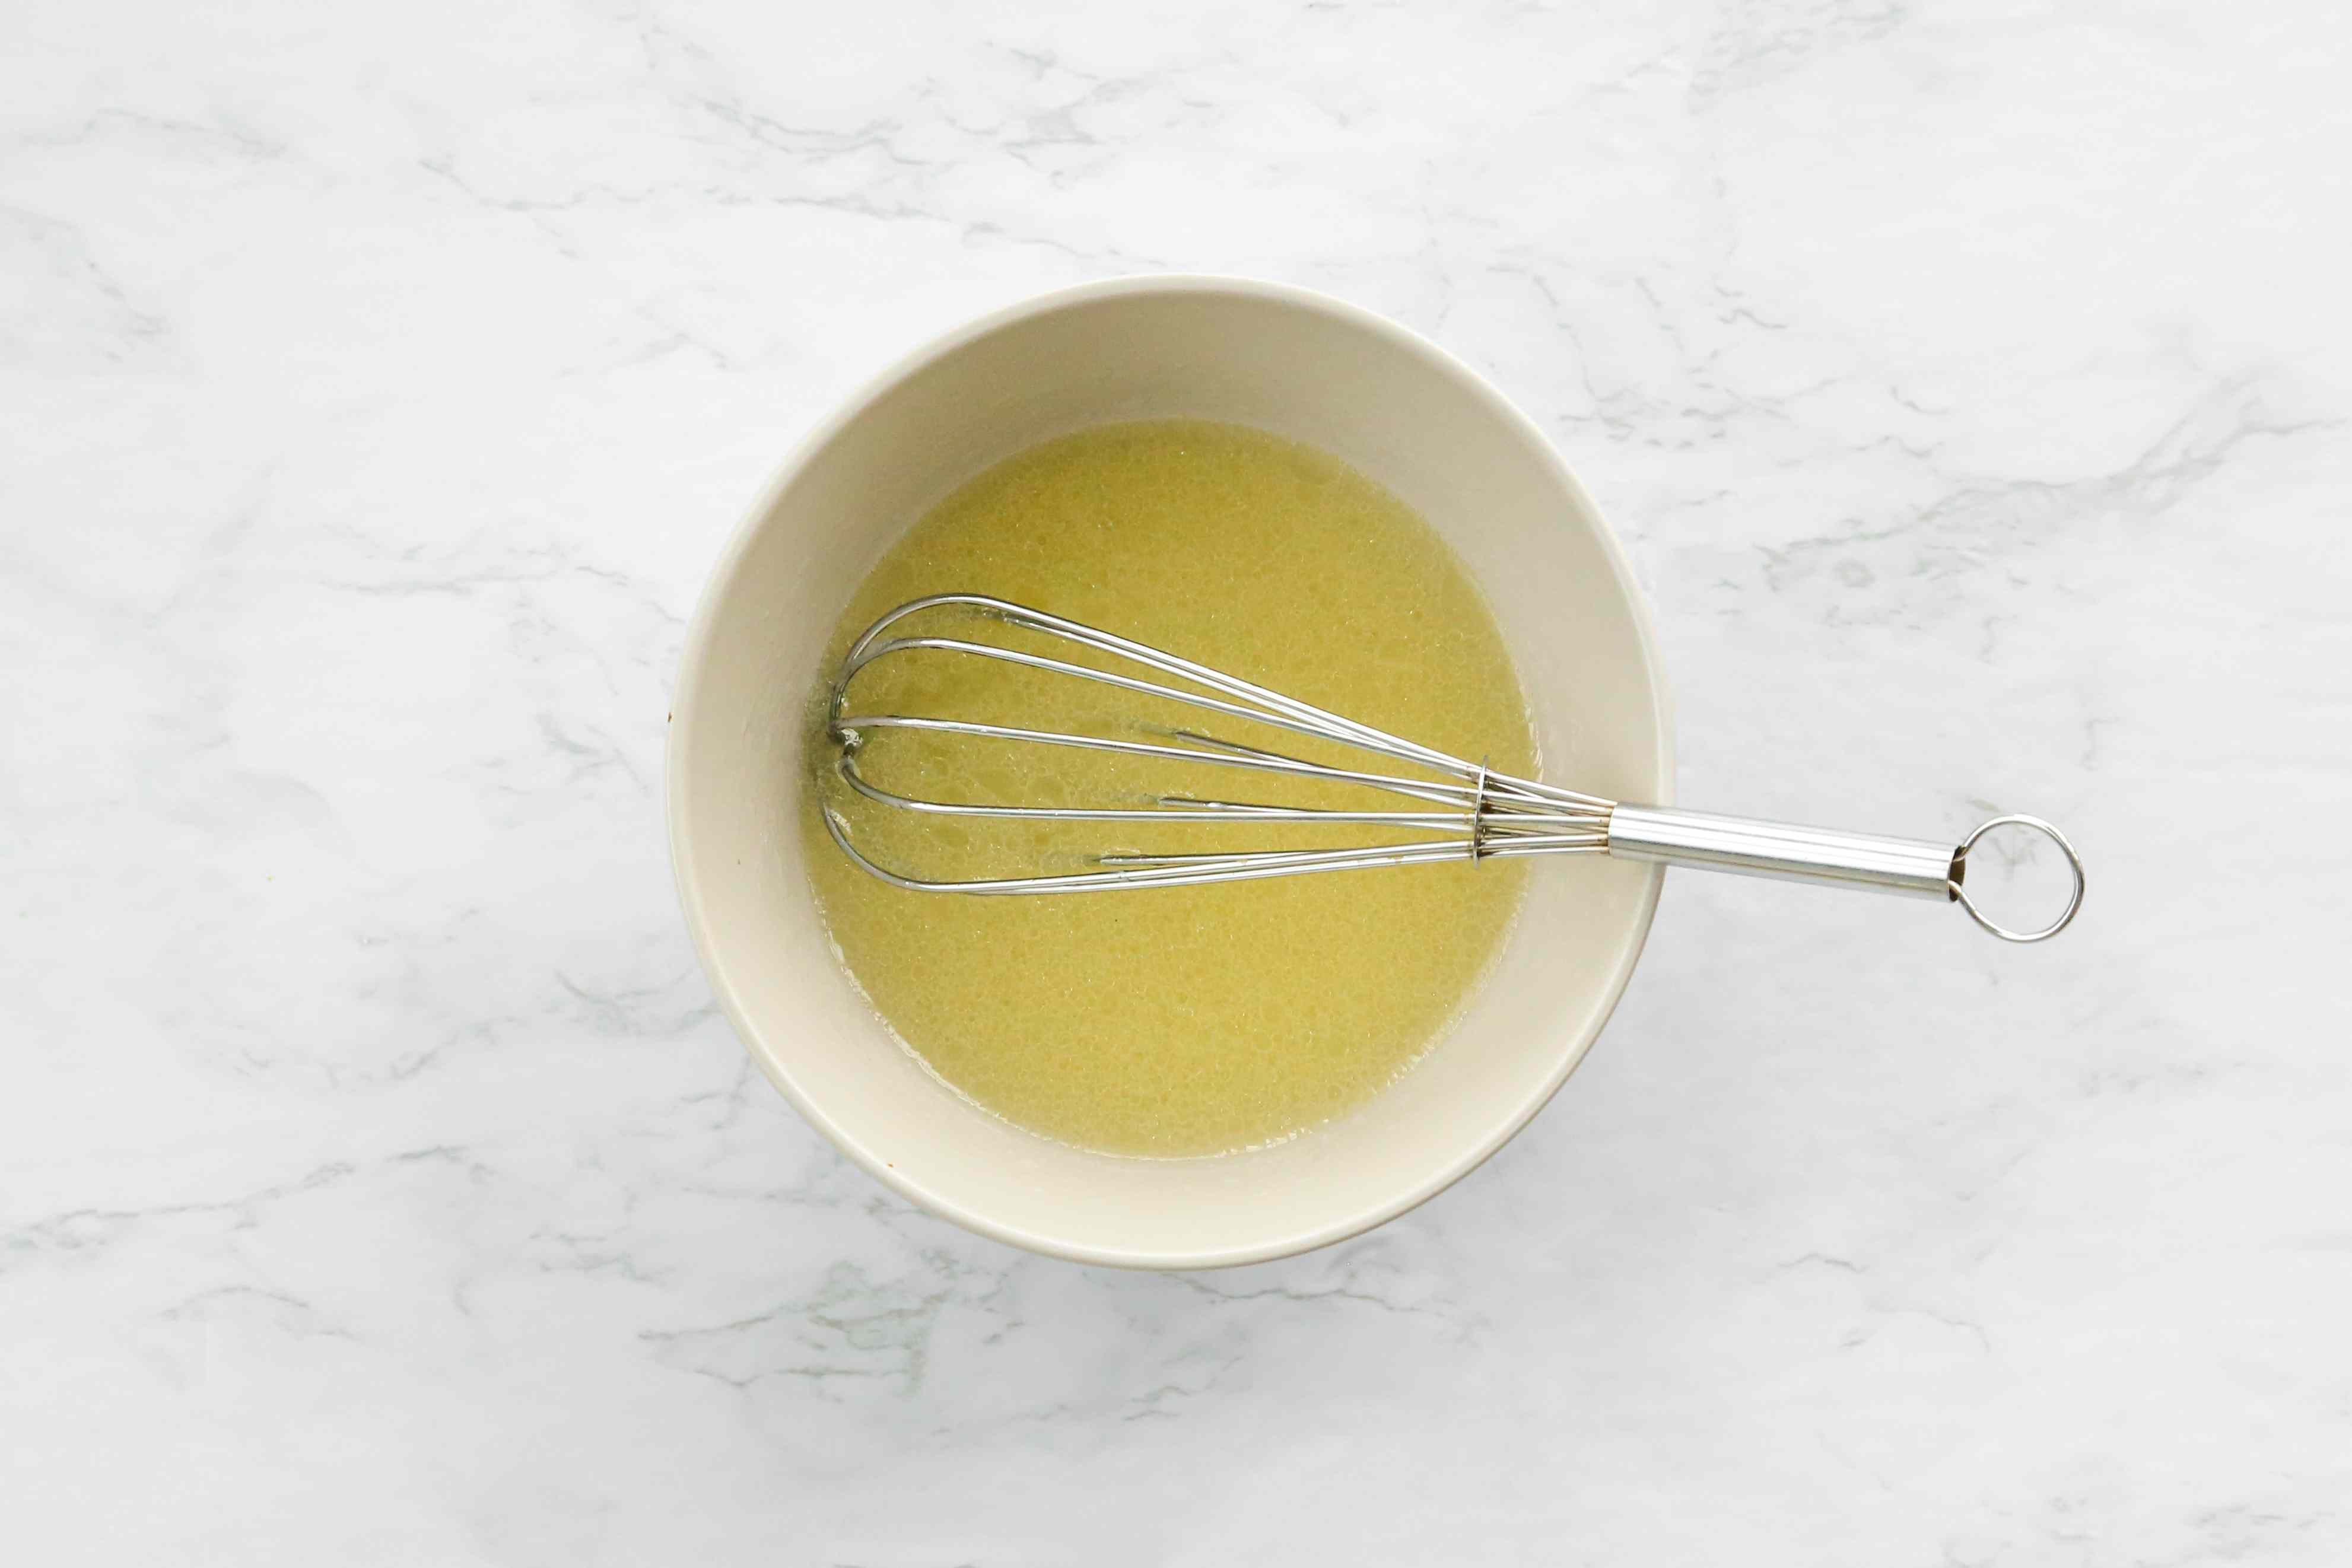 In a medium bowl, add the lemon juice and slowly whisk in the vegetable oil